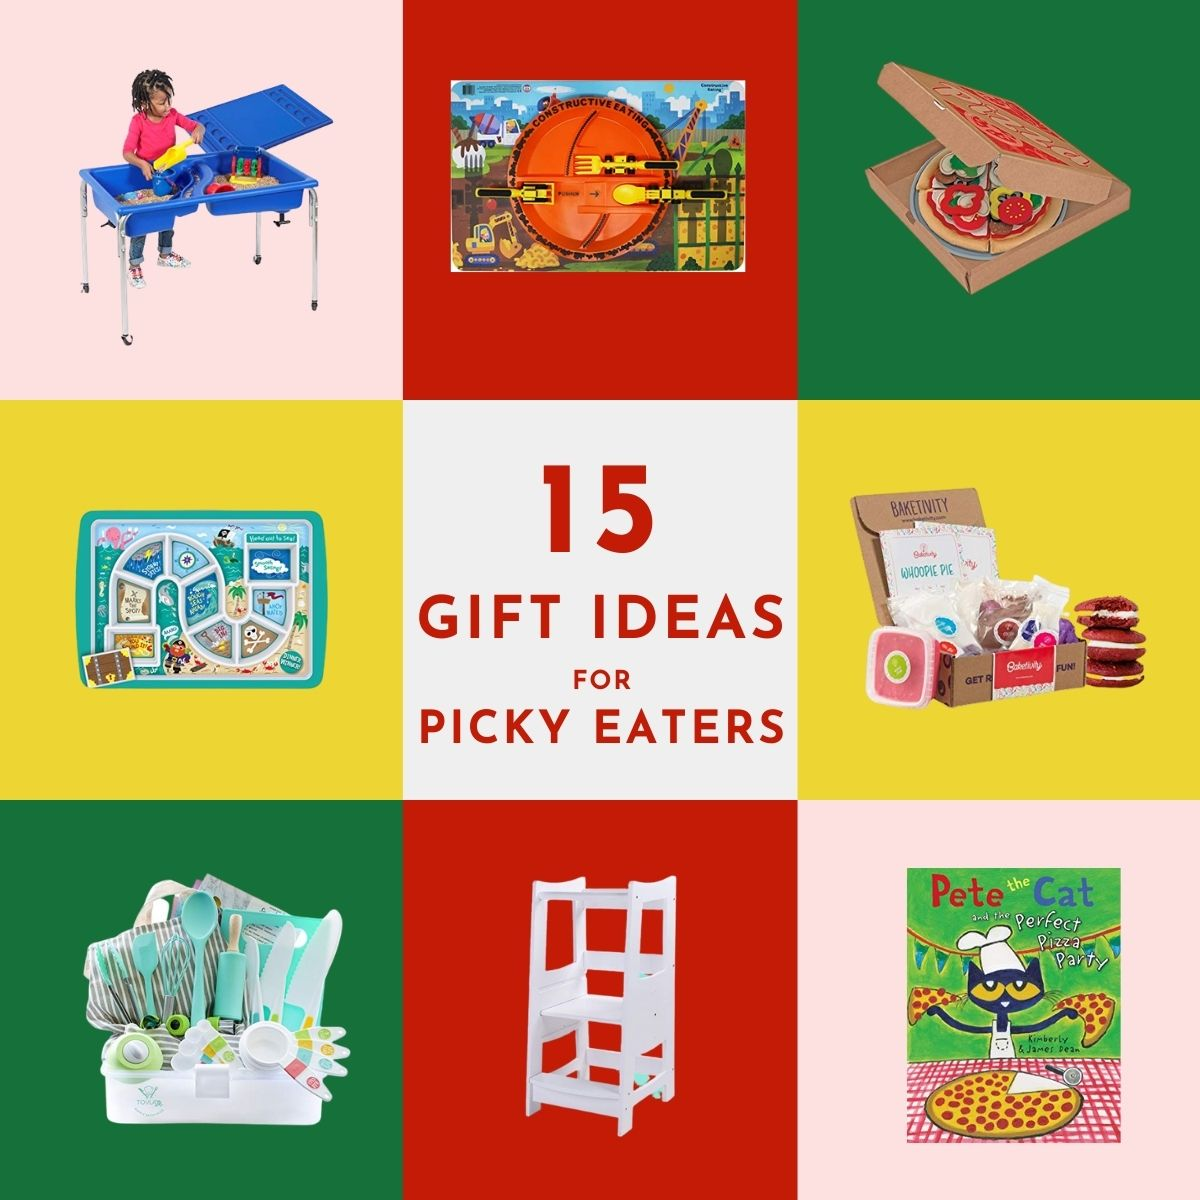 graphic of gift ideas for picky eaters